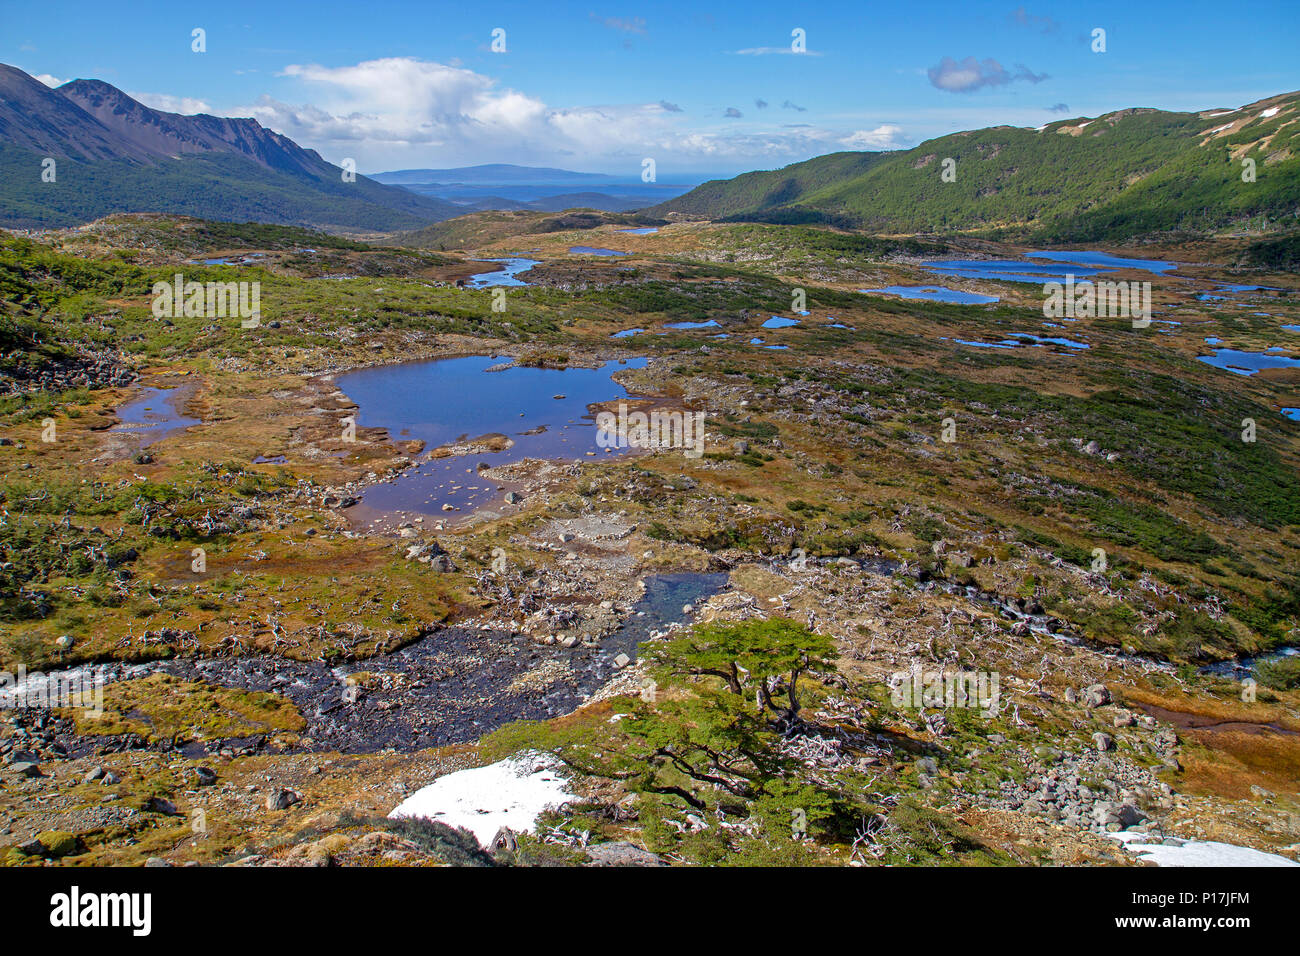 View towards Cape Horn from the mountains of Isla Navarino - Stock Image